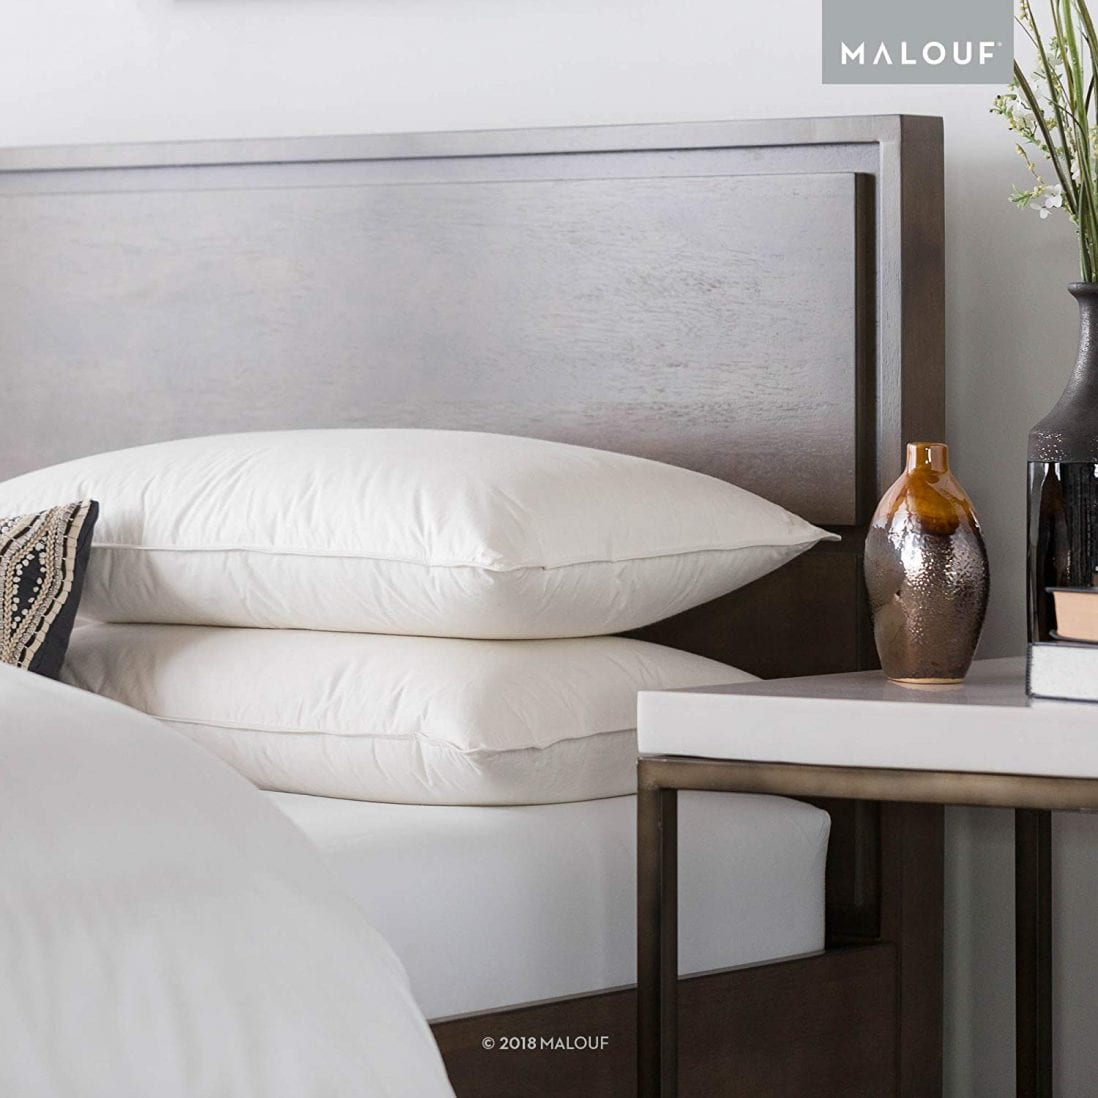 MALOUF Z TRIPLELAYER Down Pillow Review and Buying Guide by www.dailysleep.com